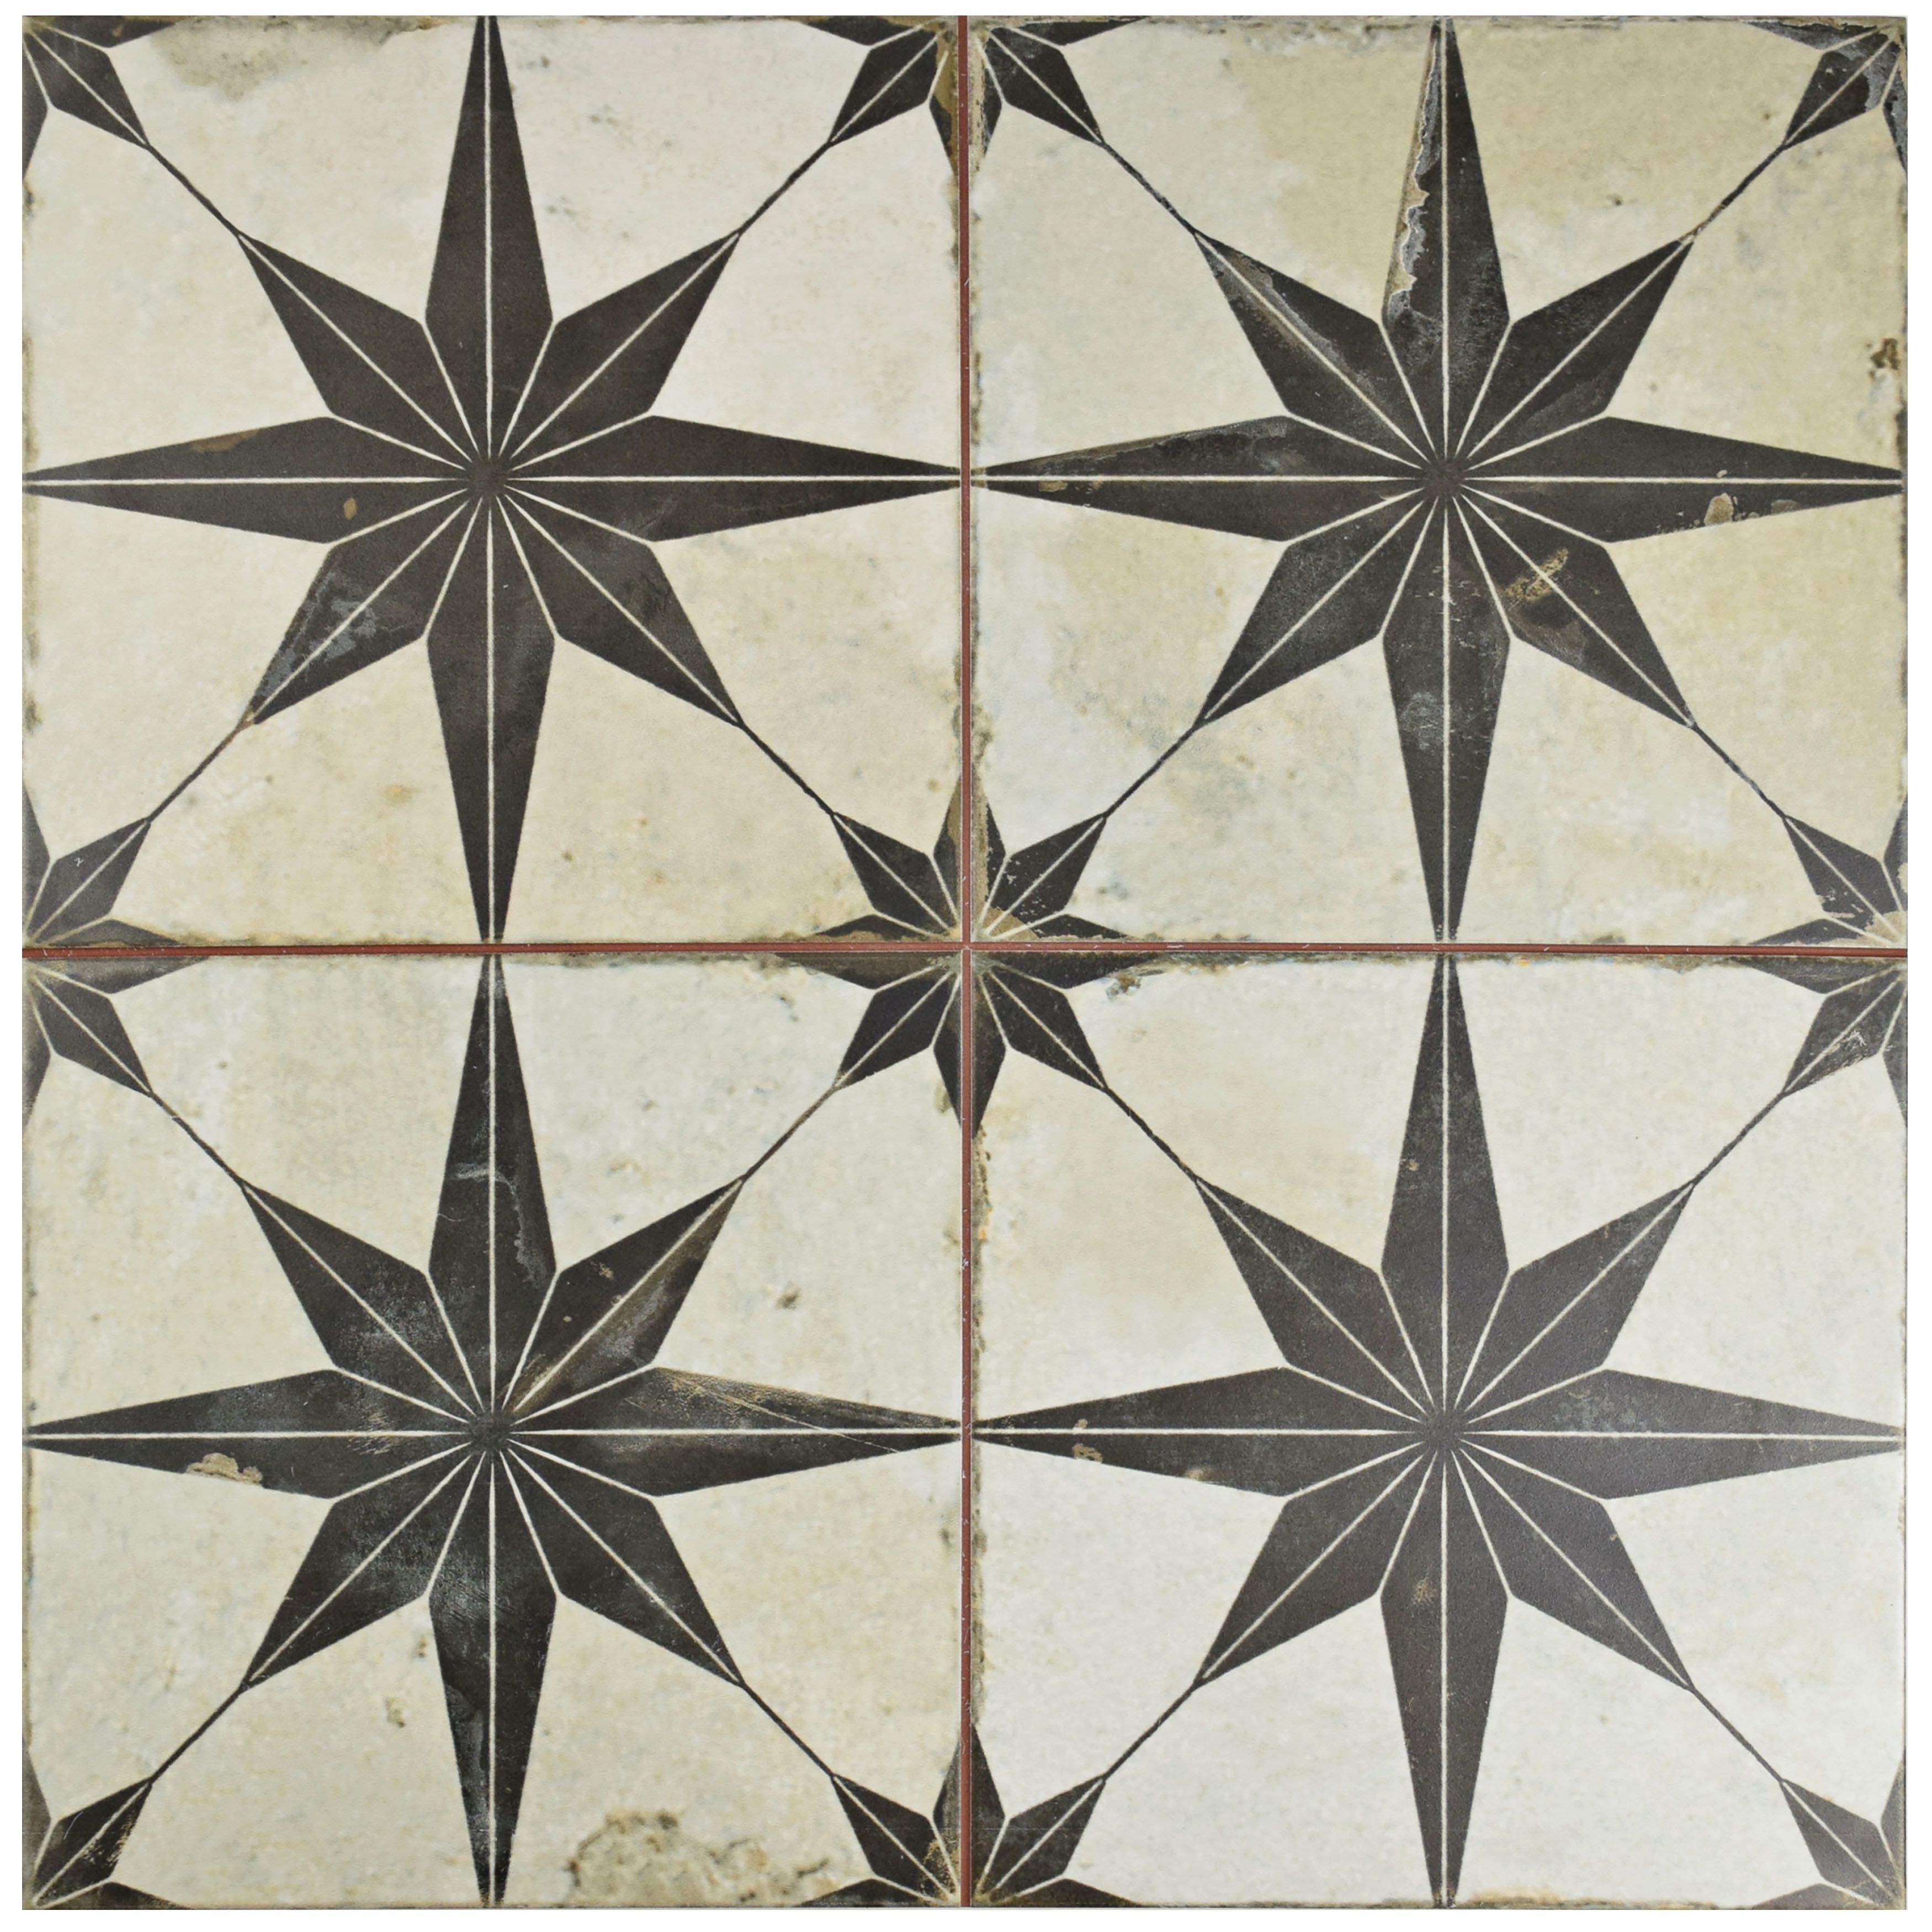 40 wonderful pictures and ideas of 1920s bathroom tile designs somertile 17625x17625 inch estrella nero ceramic floor and wall tile case dailygadgetfo Image collections